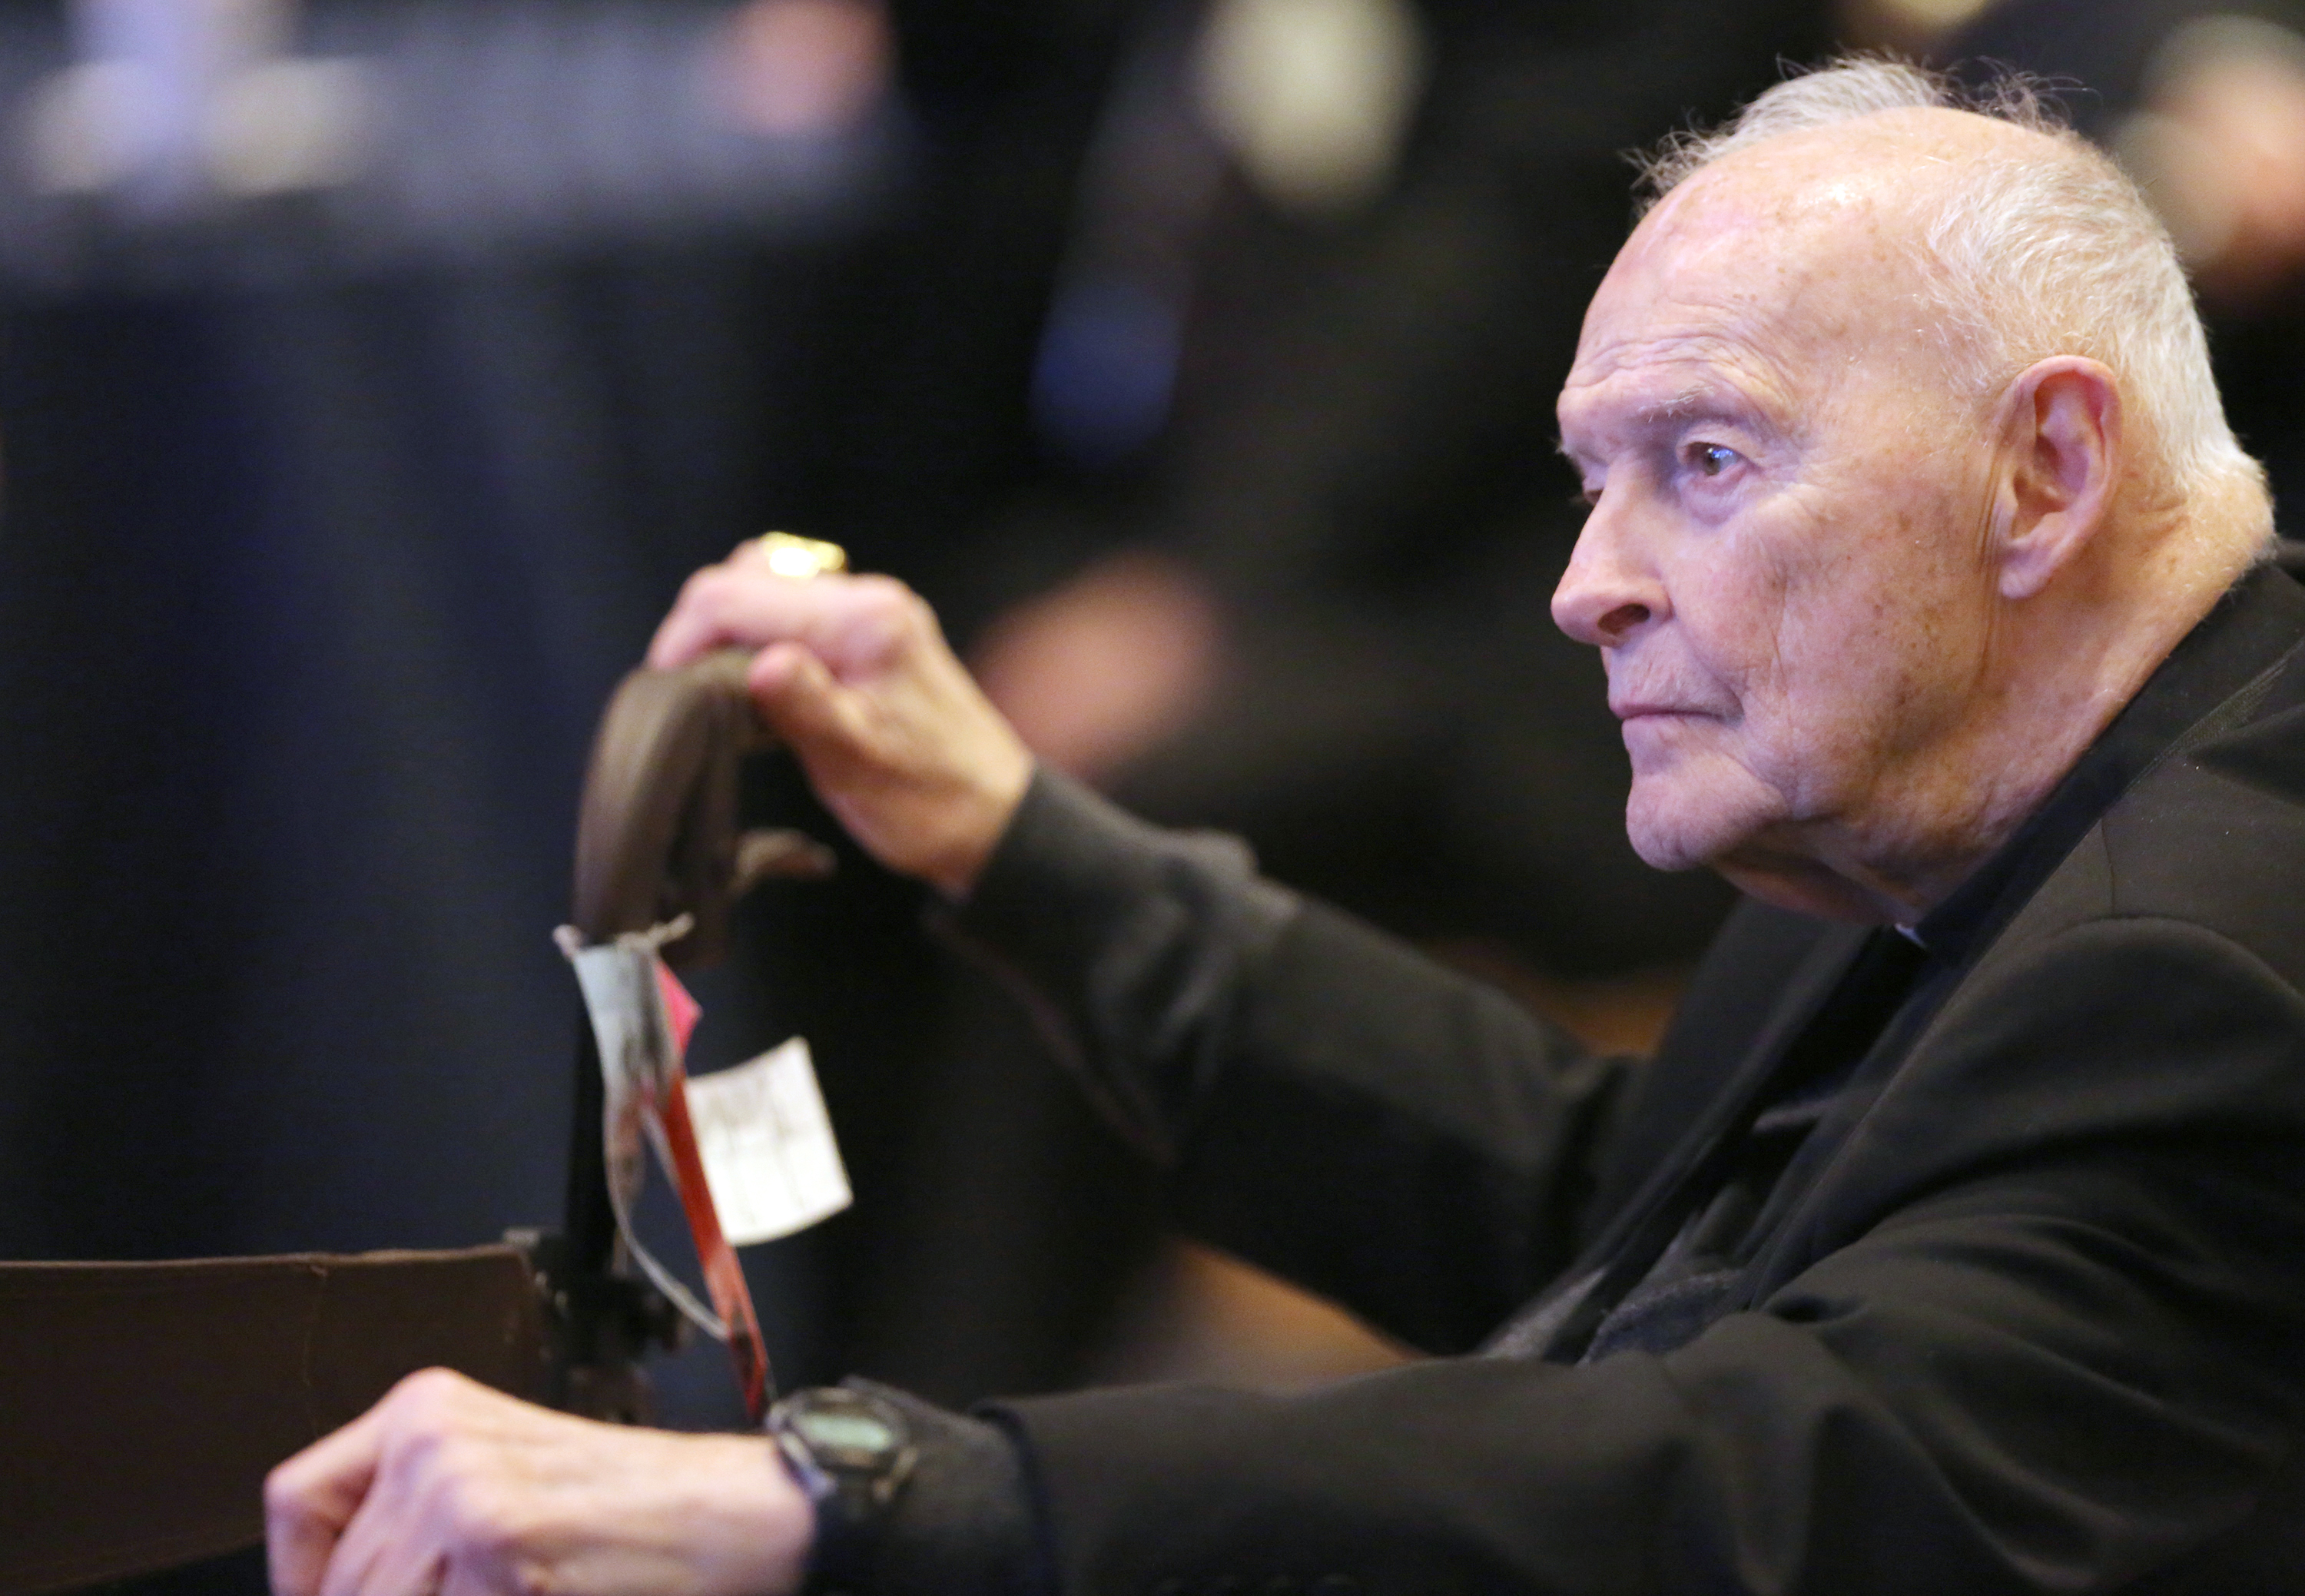 Update: Abuse allegation against Cardinal McCarrick found credible ...